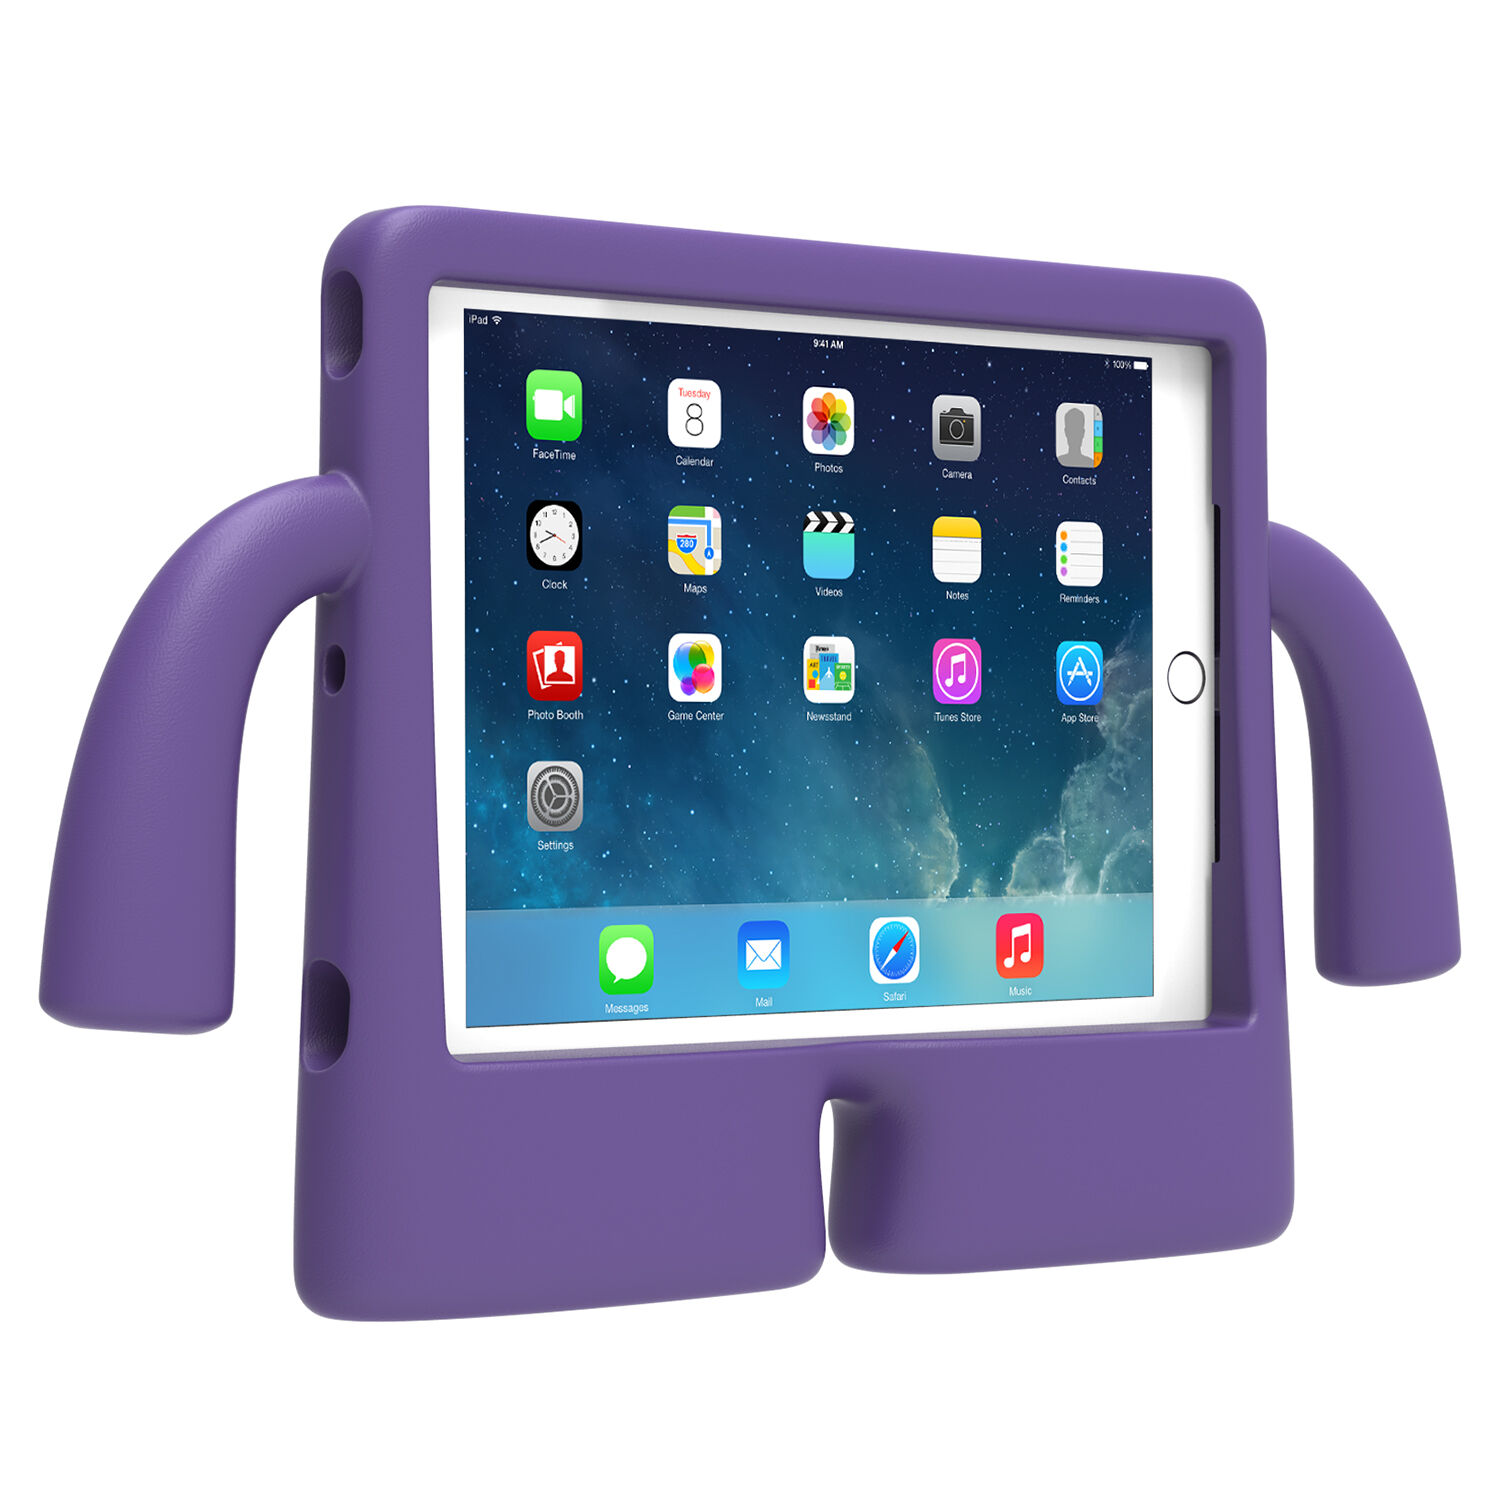 Shop Best Buy for Apple iPads, including the new iPad and popular models like the iPad Mini, iPad Air, and iPad with Retina Display. Shop for iPad accessories too!